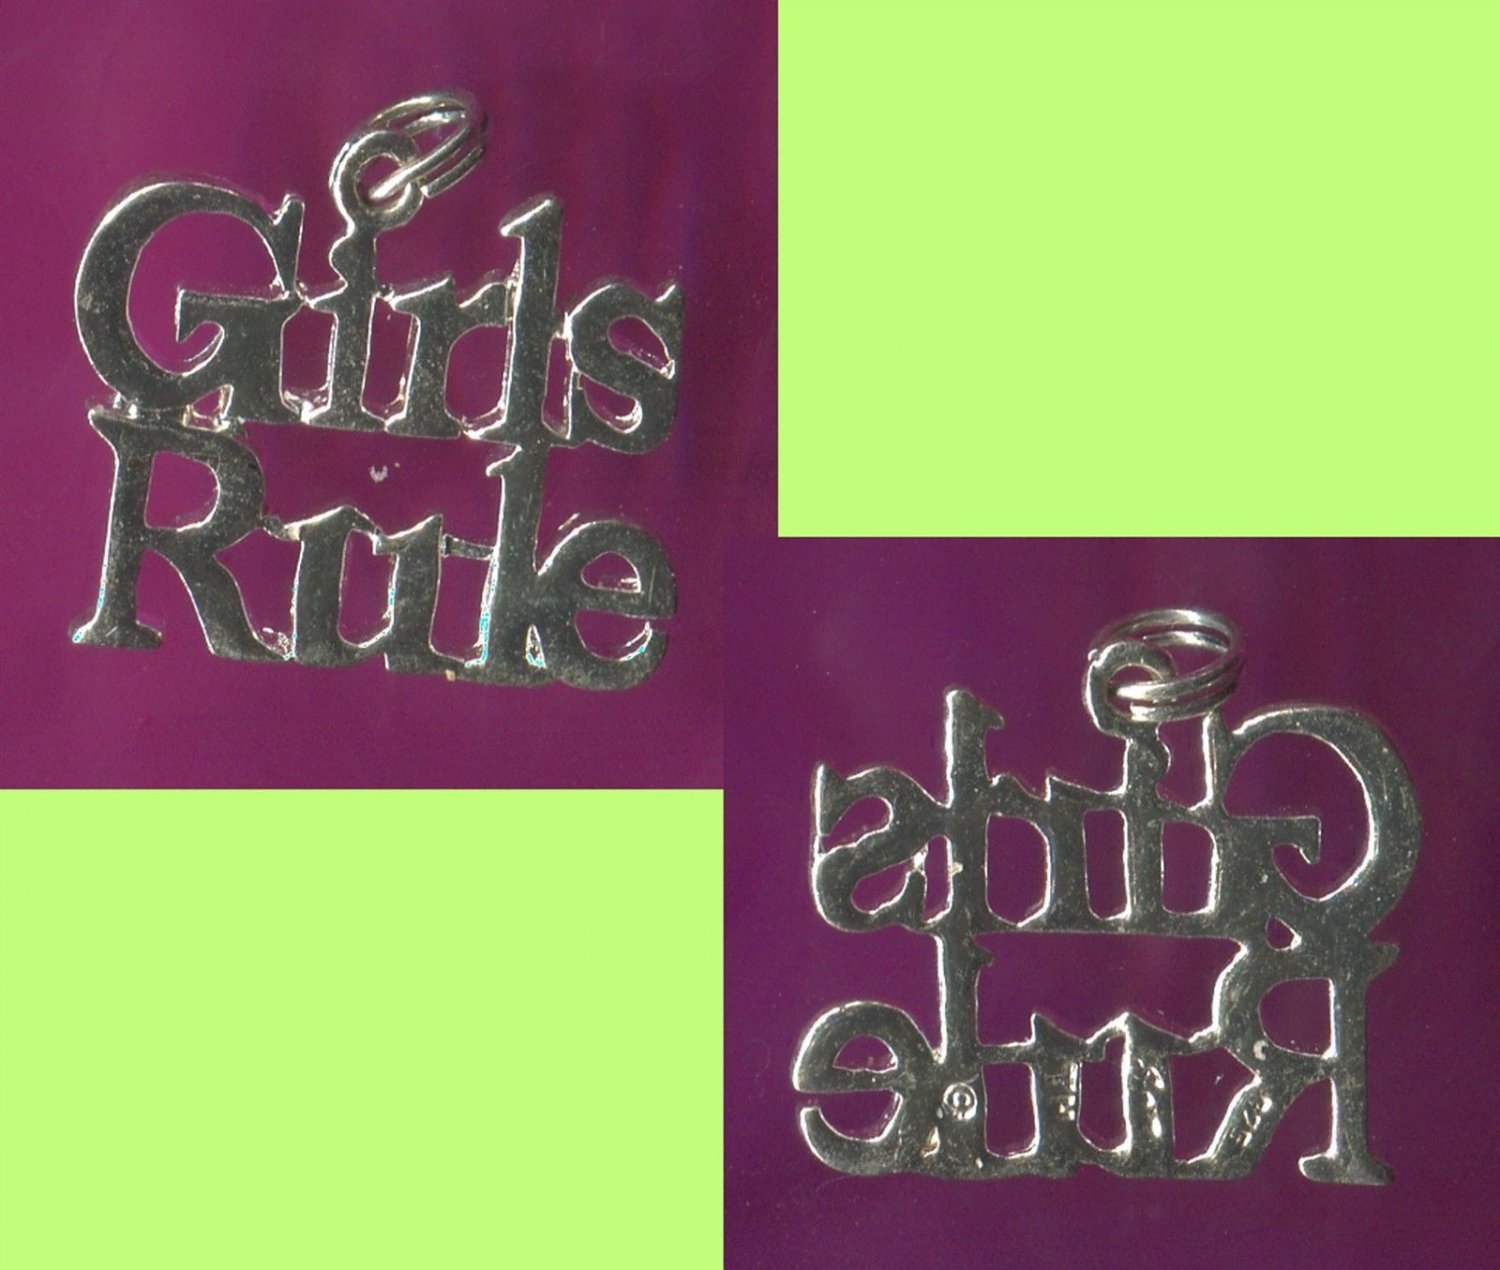 STERLING 925 Silver Charm : GIRLS RULE !!!  signed JEZ